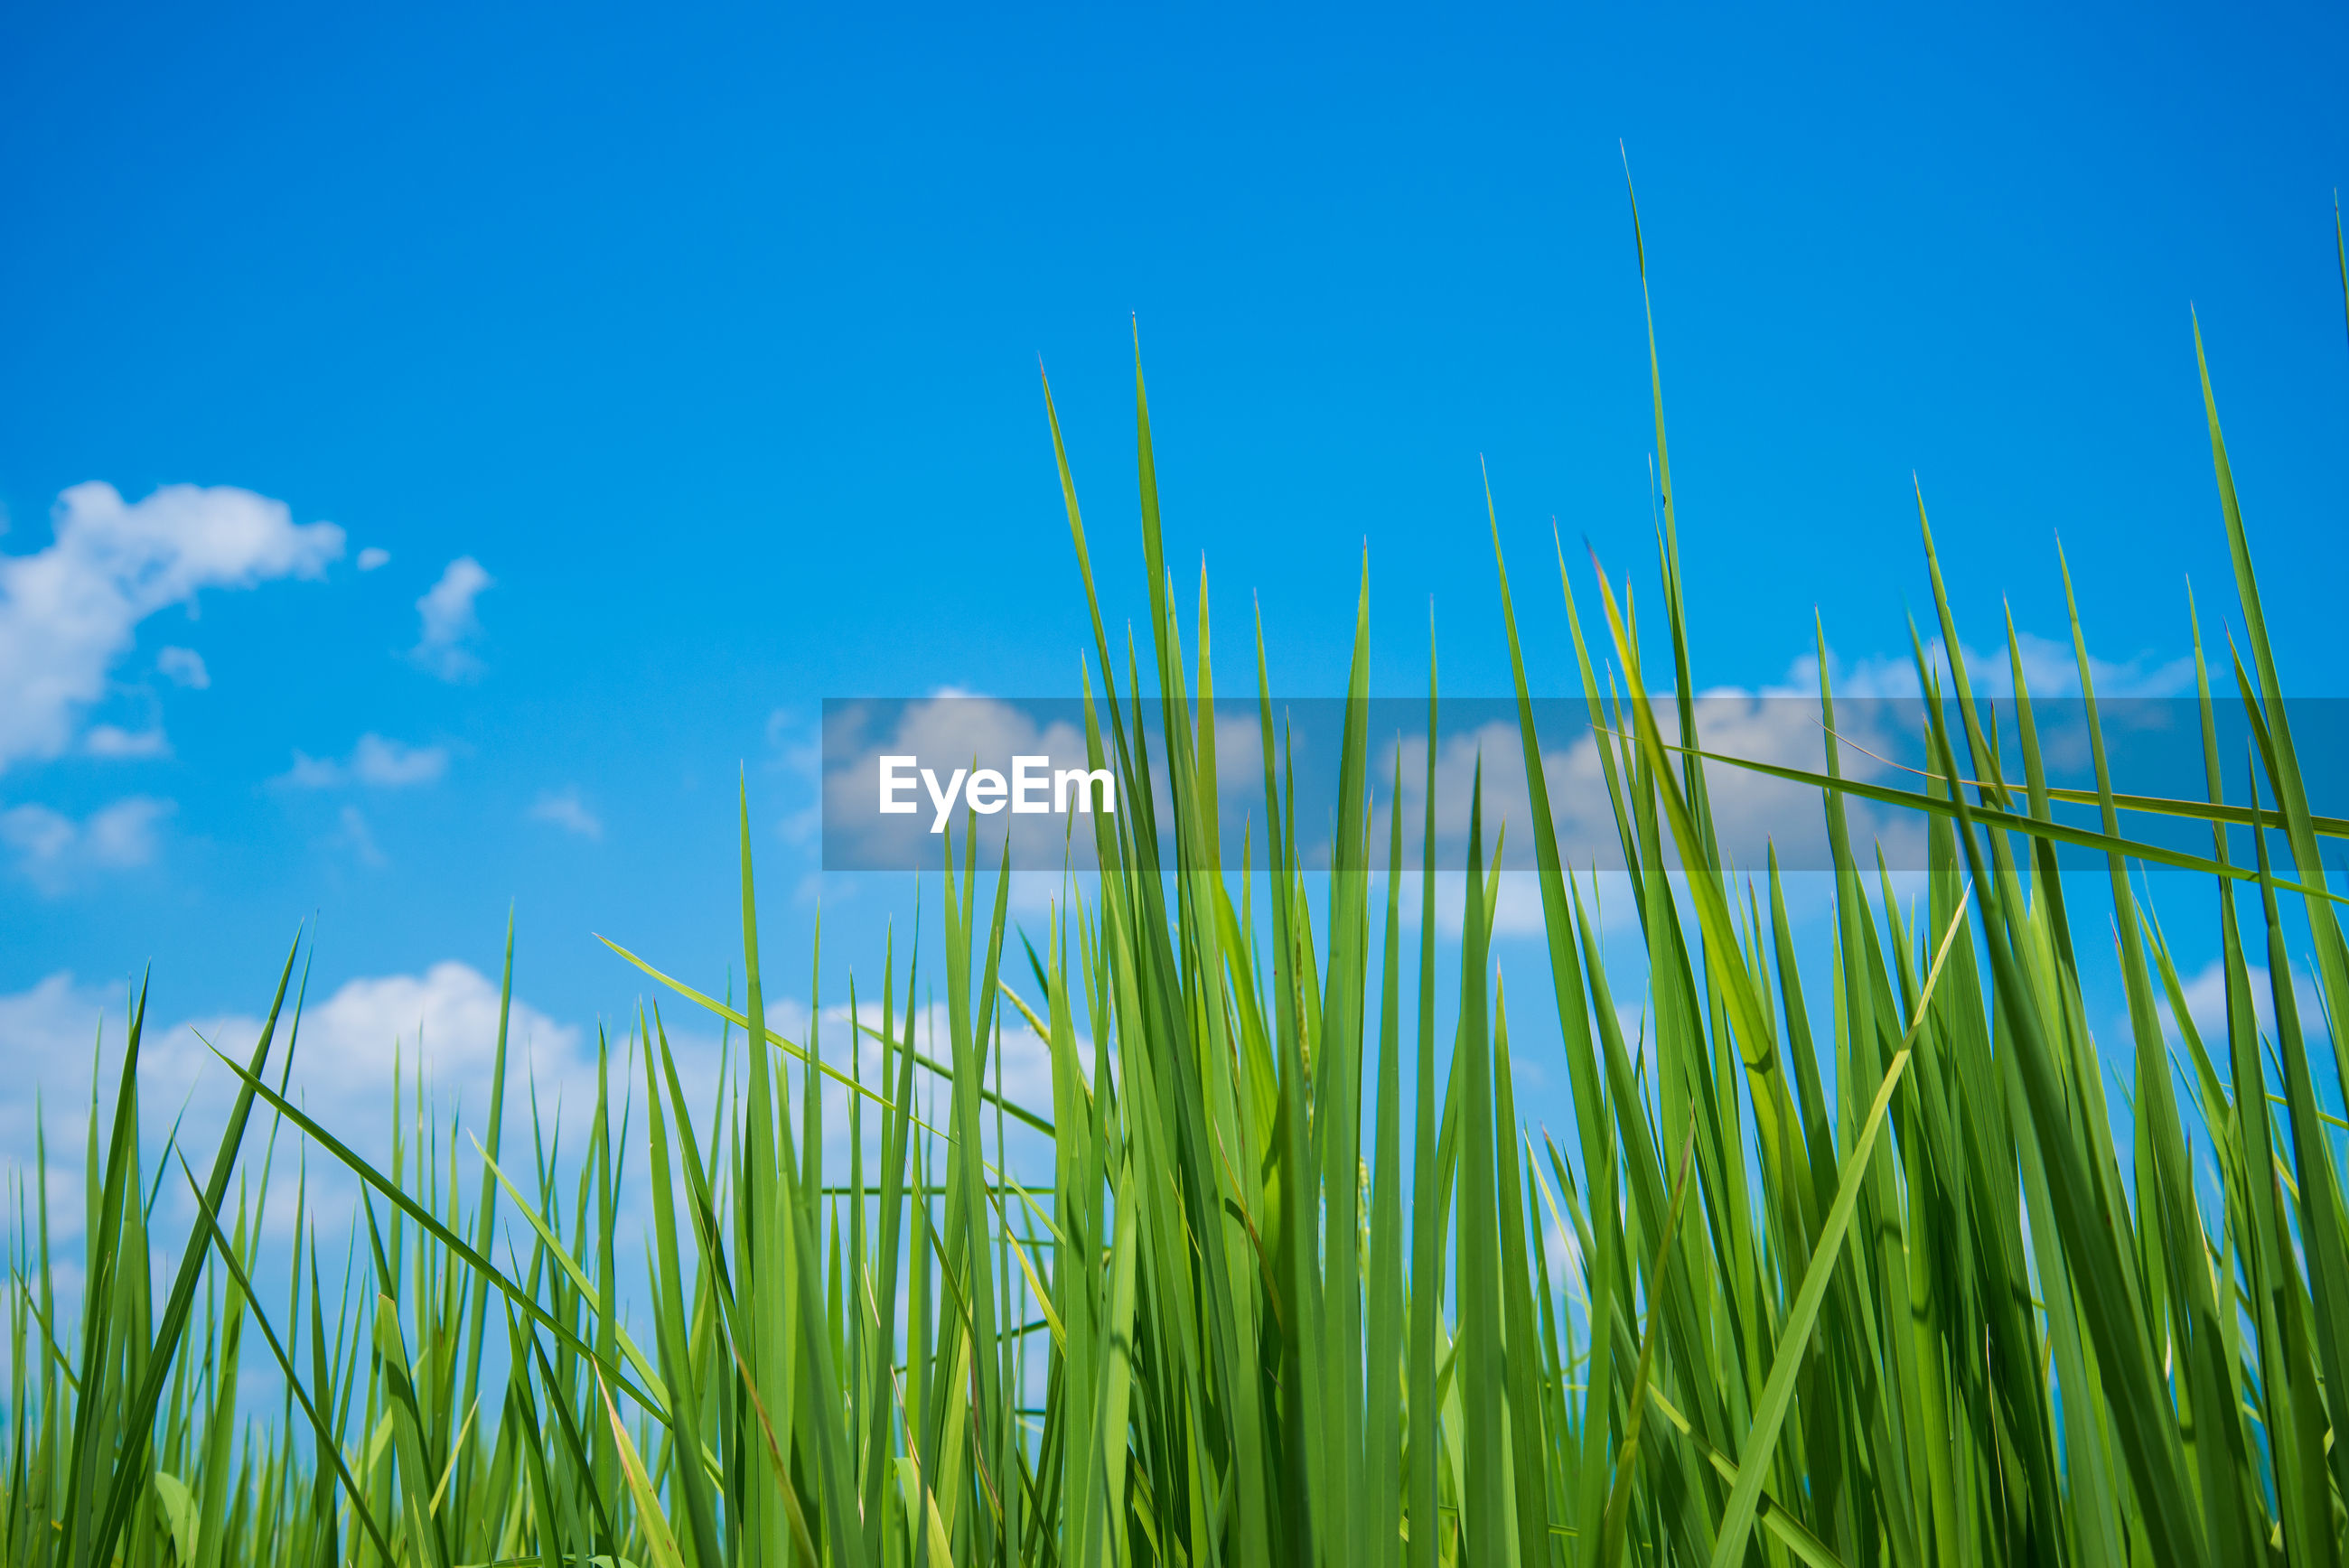 CLOSE-UP OF FRESH GRASS AGAINST BLUE SKY